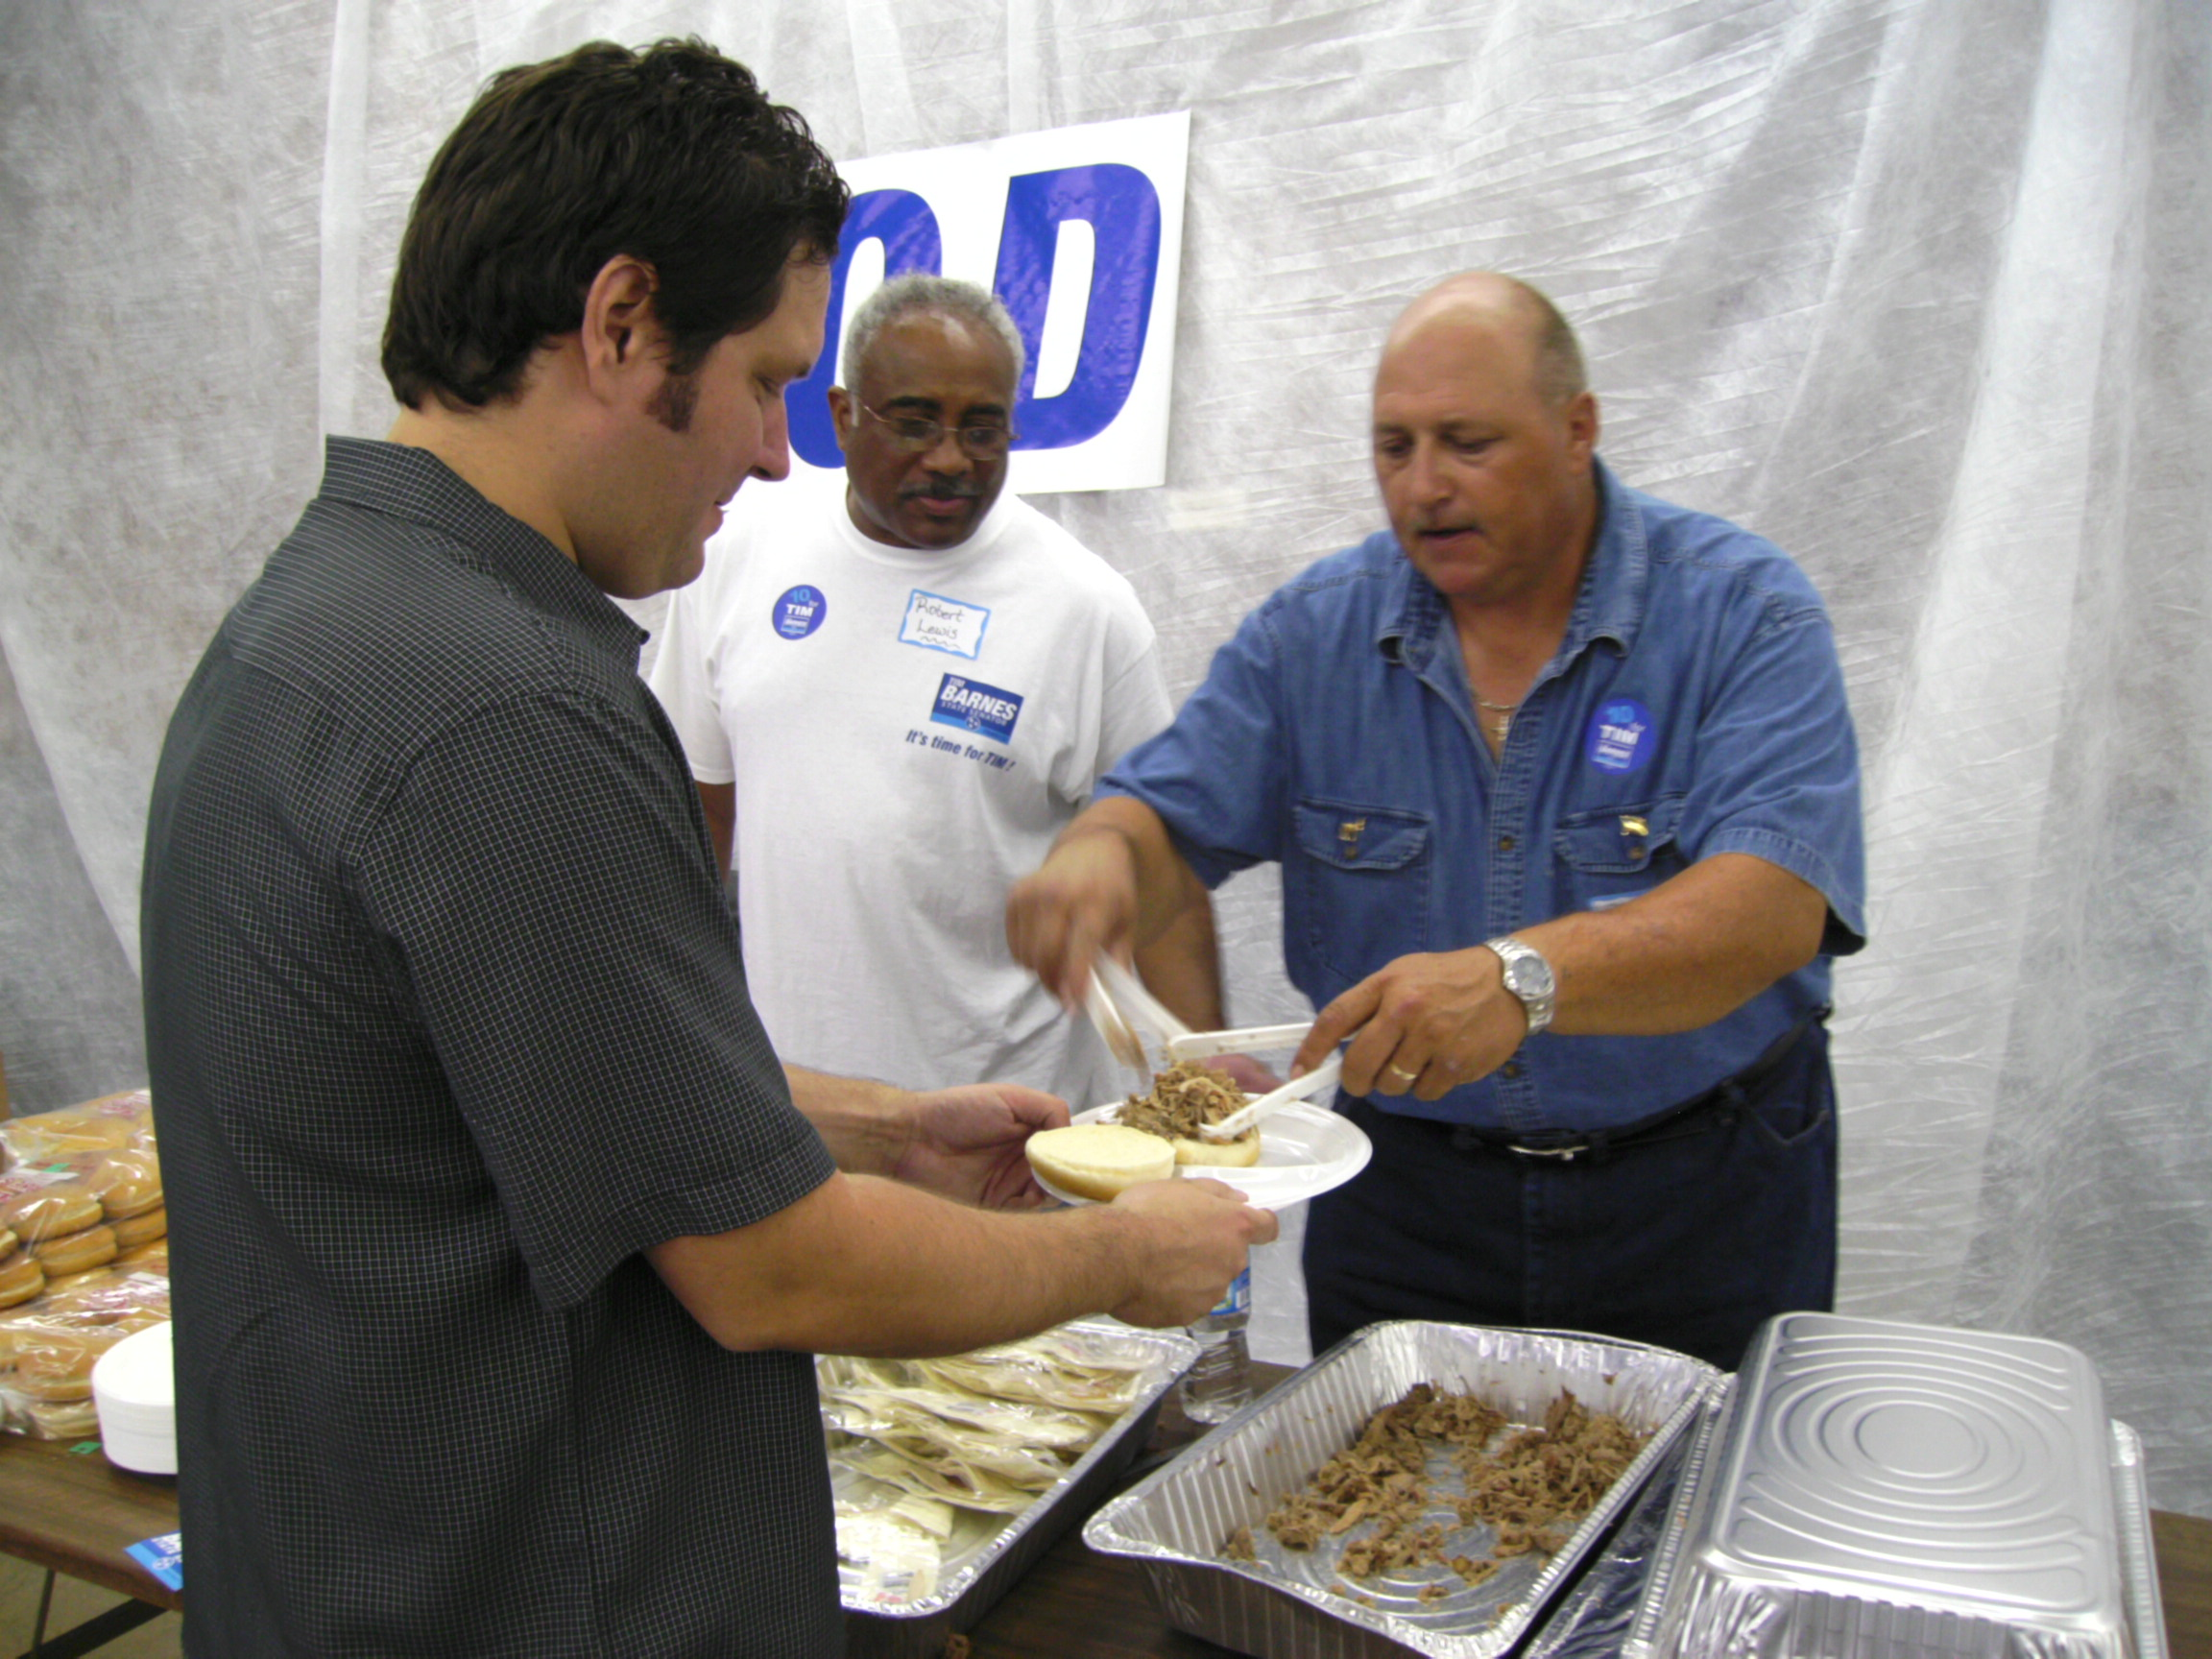 Union members serve meal